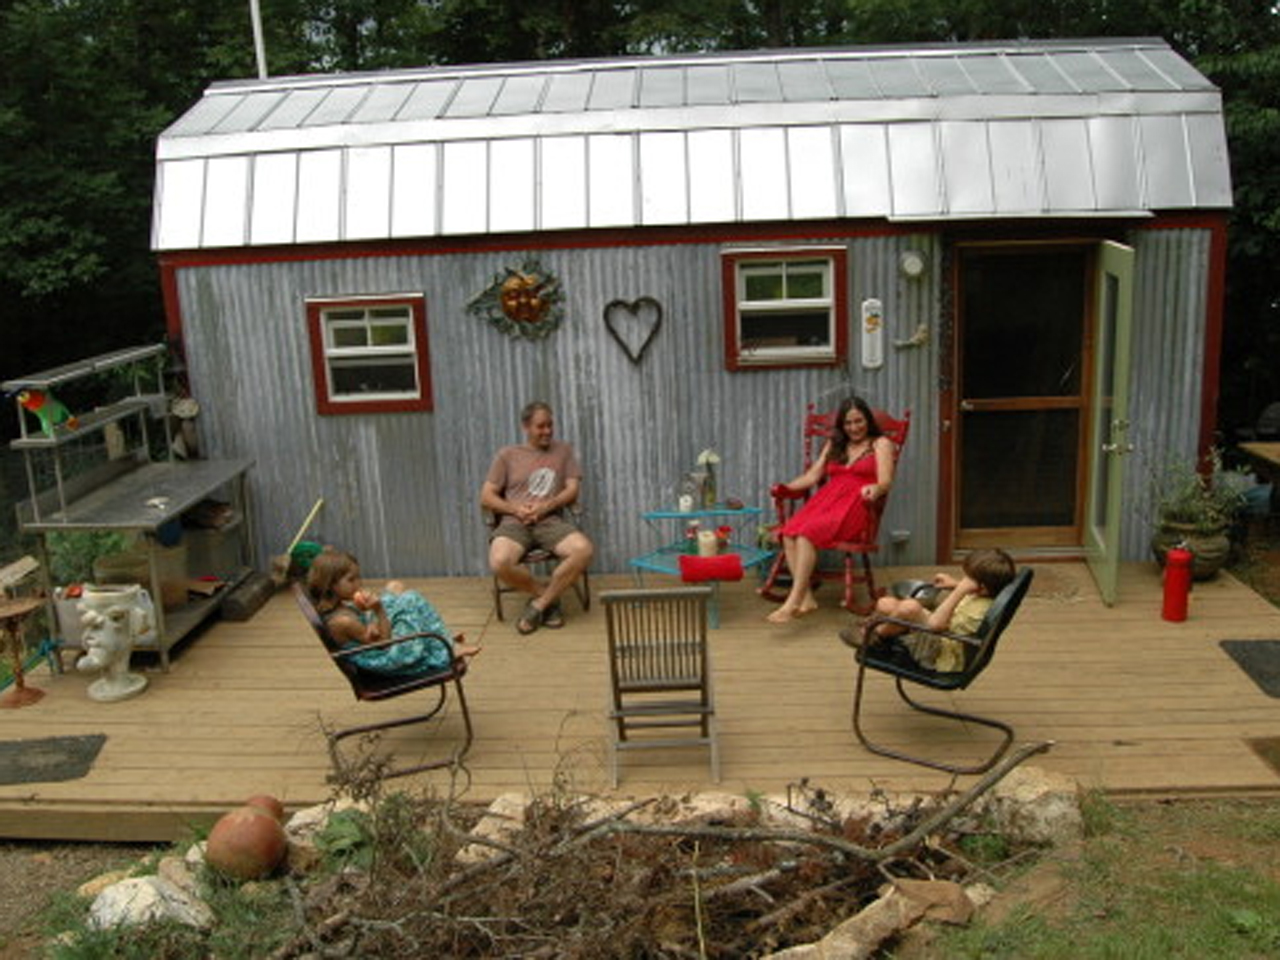 Tiny houses big lives how families make small spaces work in real life - Making most of small spaces property ...